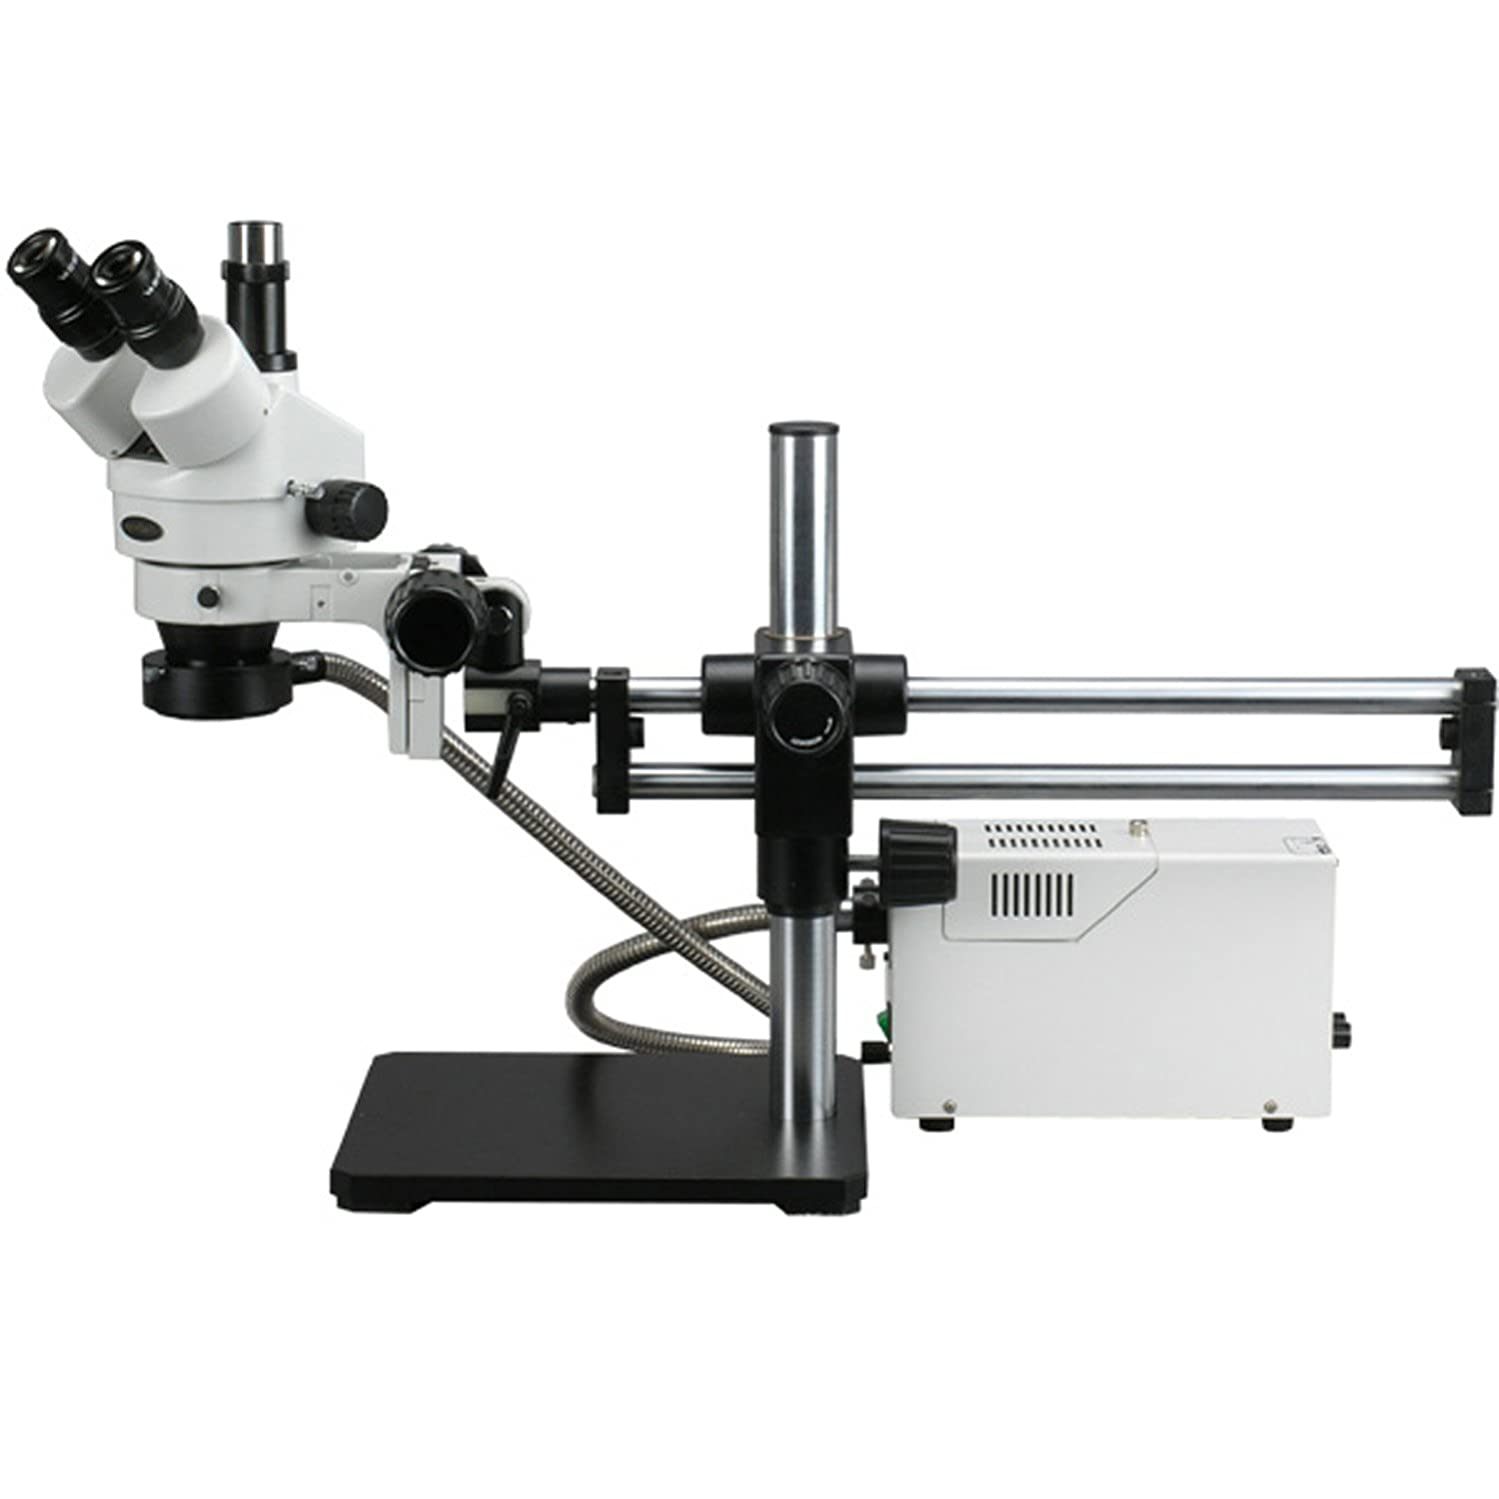 AmScope SM-5TZZ-FOR Professional Trinocular Stereo Zoom Microscope, WH10x and WH20x Eyepieces, 3.5X-180X Magnification, 0.7X-4.5X Zoom Objective, Fiber-Optic Ring Light, Ball-Bearing Double-Arm Boom Stand, 110V-120V, Includes 0.5X and 2.0X Barlow Lenses